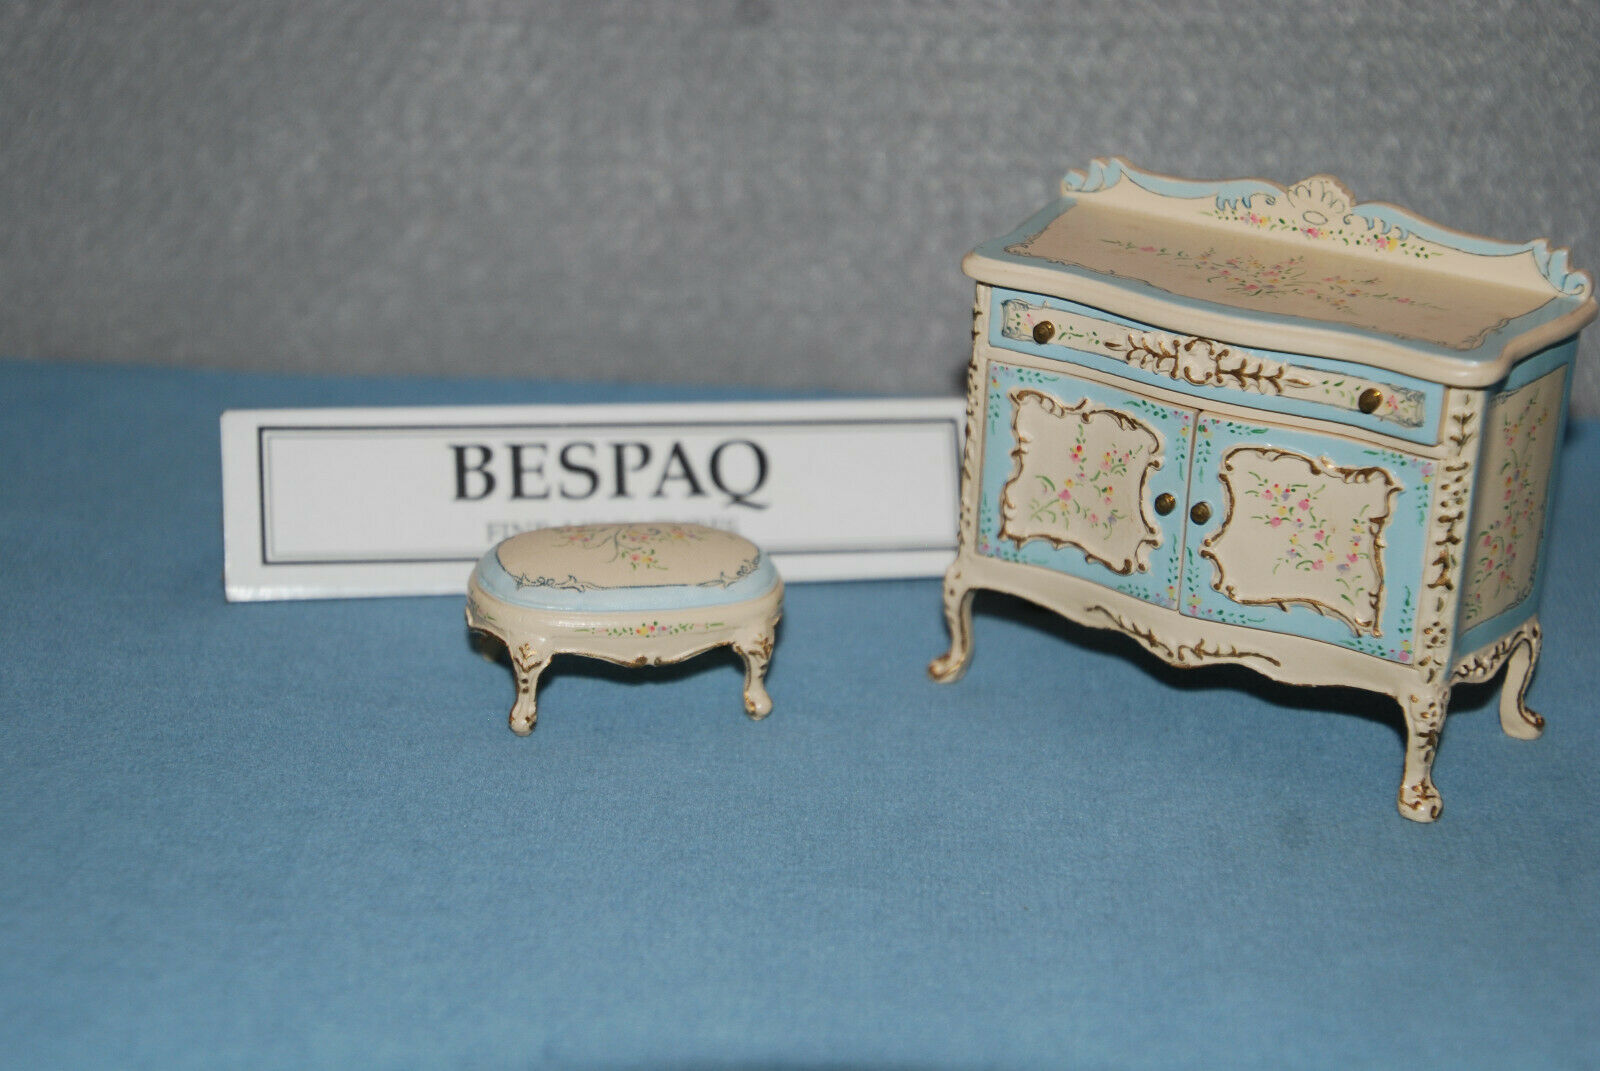 Bespaq Detailed Hand Painted Cream & azul Chest And Stool Miniature Furniture